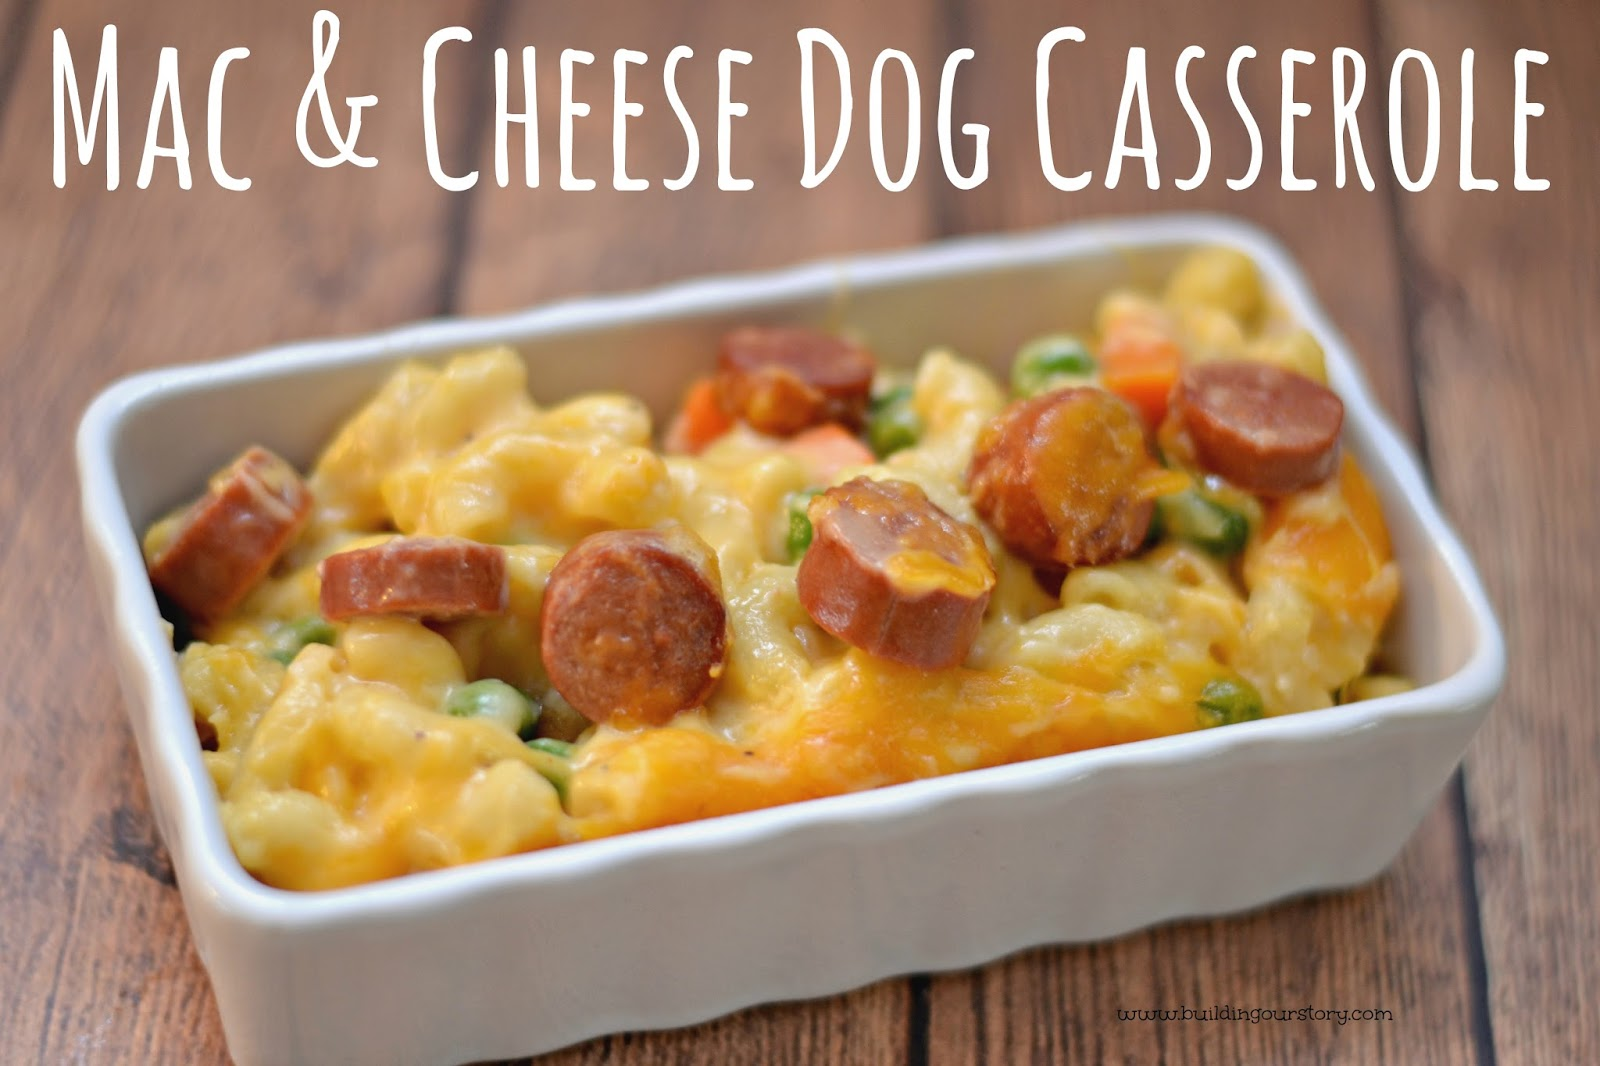 May 26, · This simple hot dog cheesy macaroni casserole takes macaroni and cheese to a new level. It's a one dish meal packed with all-beef hot dogs and jumbo elbow macaroni that's smothered in a homemade bacon cheese sauce. It's a dish that kids of all ages will love! Casseroles are a great love of mine in particularly for weekday meals and od7hqmy0z9642.gqgs: